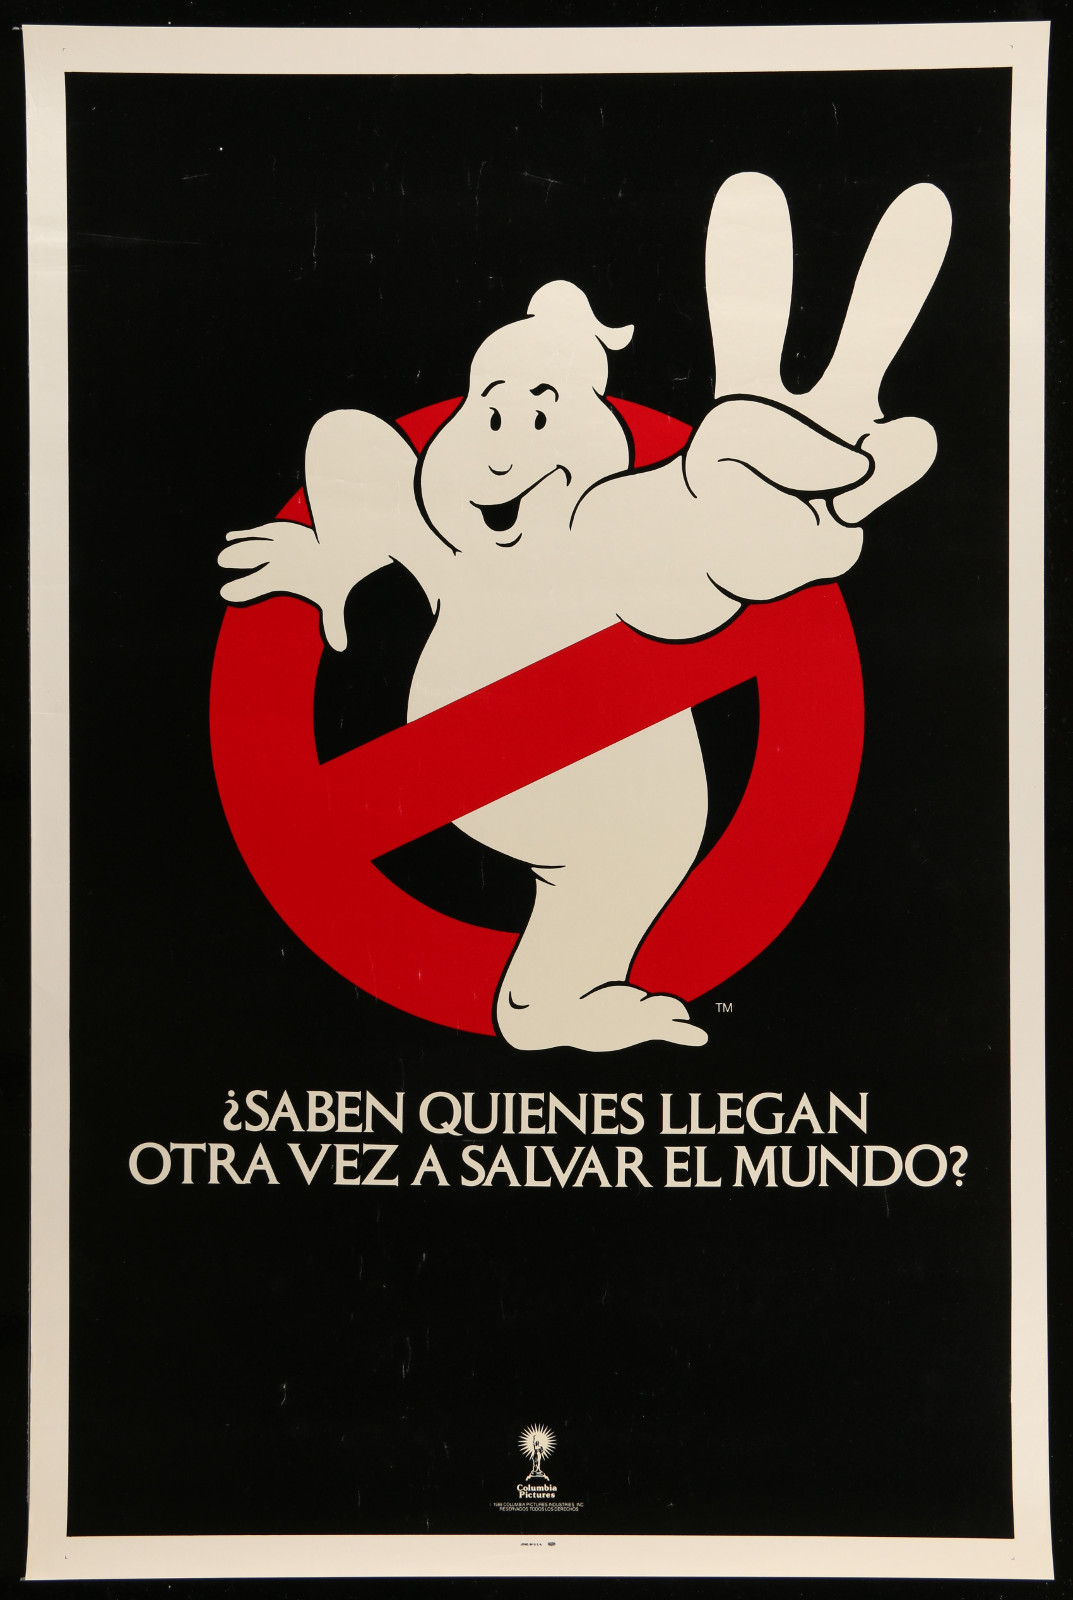 Ghostbusters Ii 2A457 A Part Of A Lot 16 Unfolded Mostly Single-Sided Mostly 27X41 One-Sheets '80S-90S Great Movie Images!